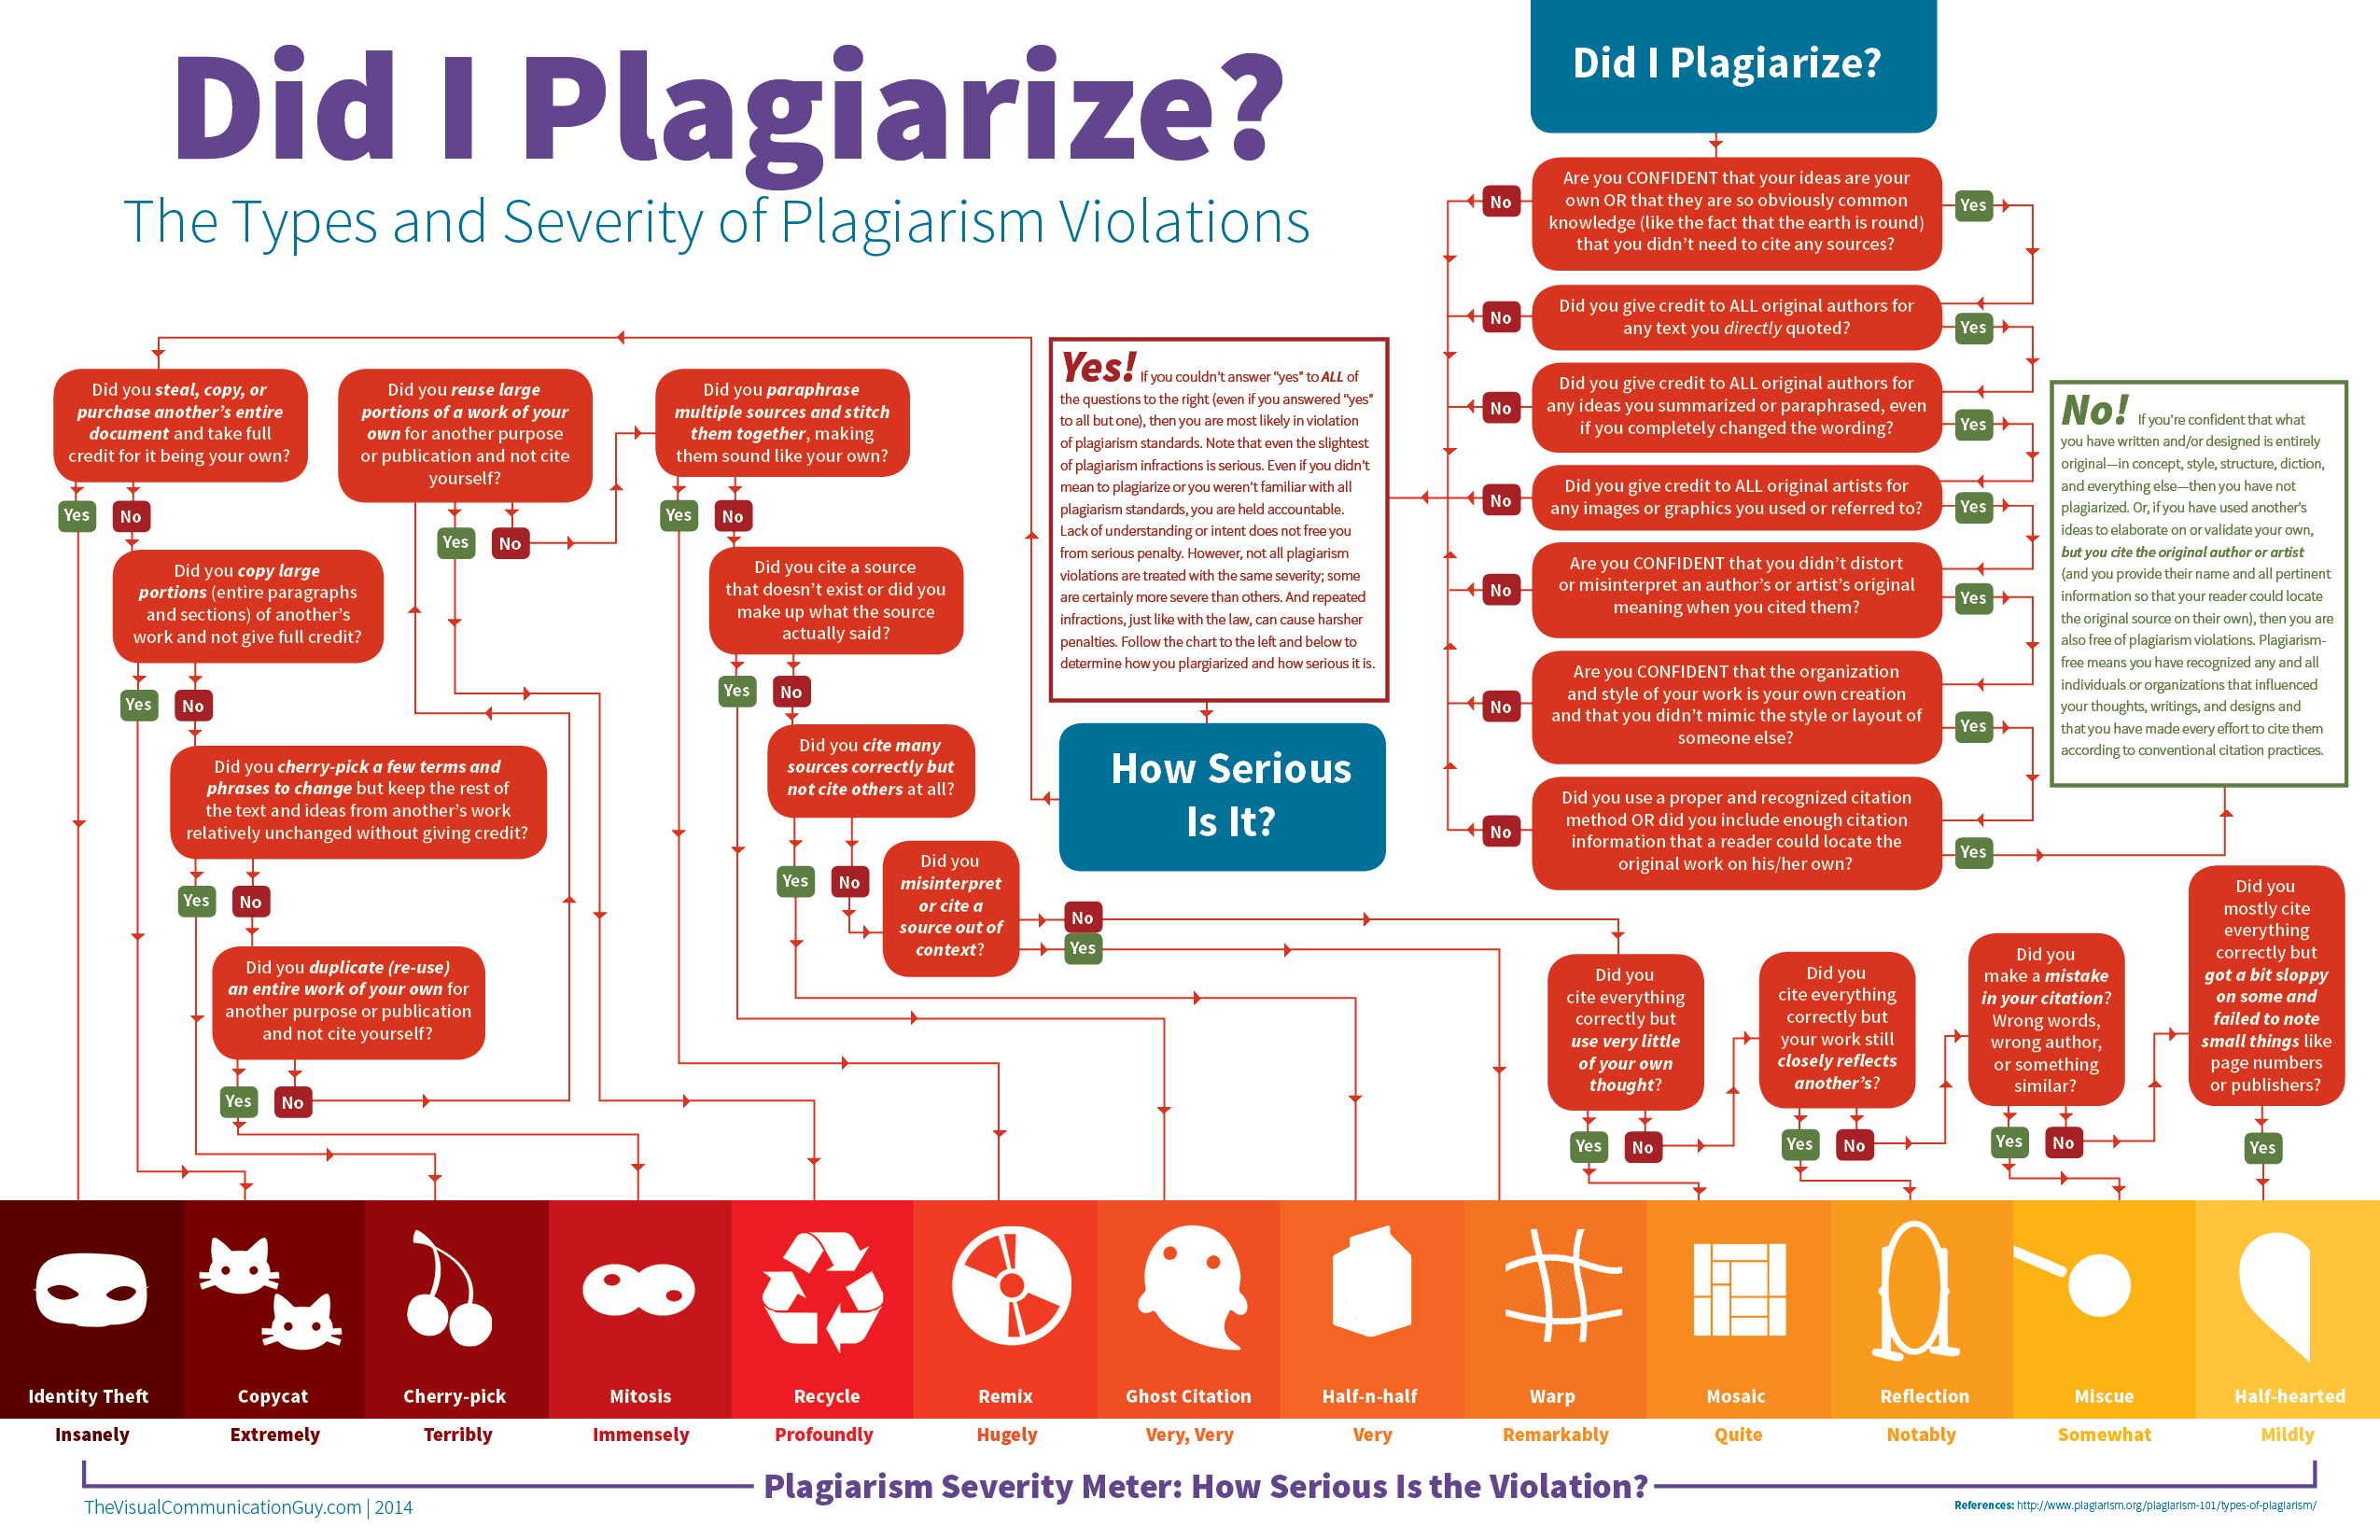 Did I Plagiarize infographic